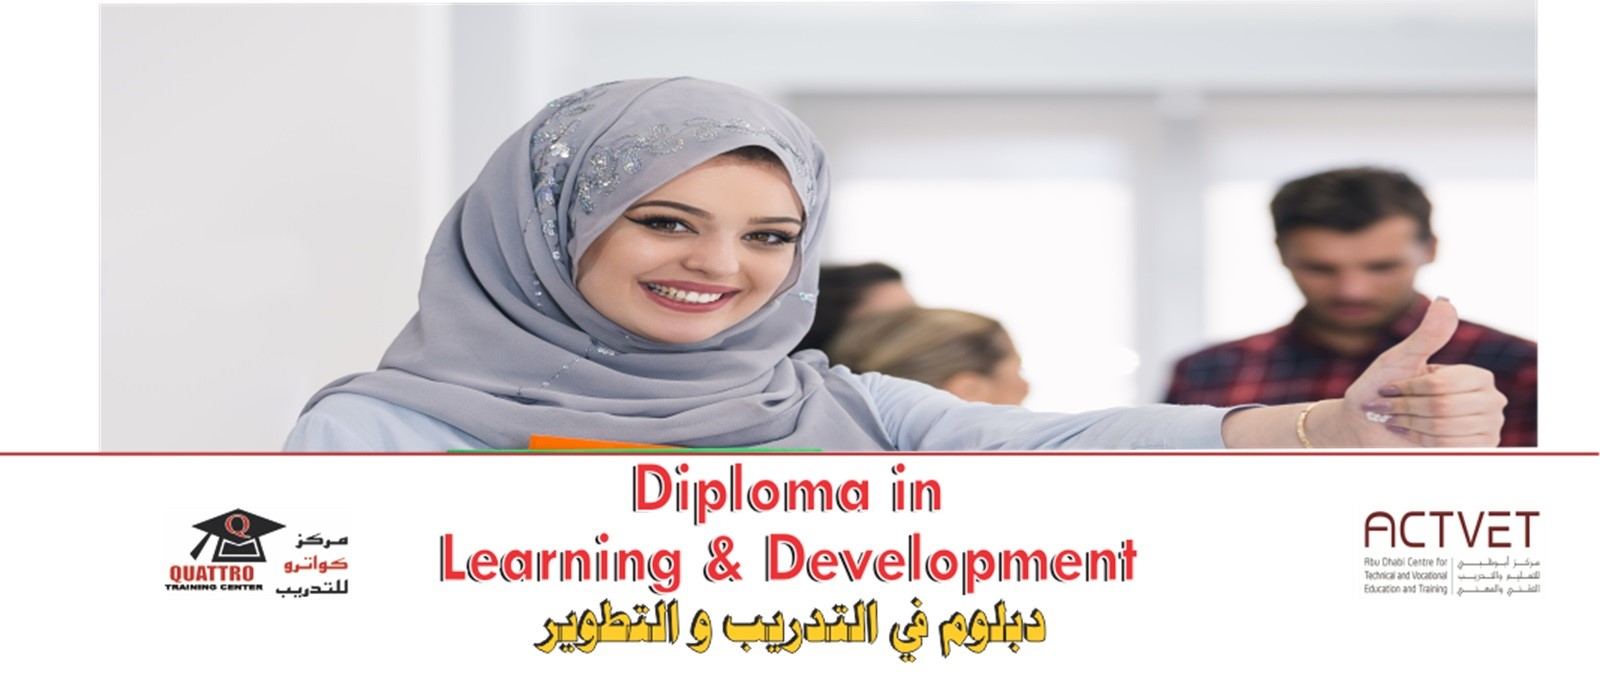 Diploma in Learning & Development